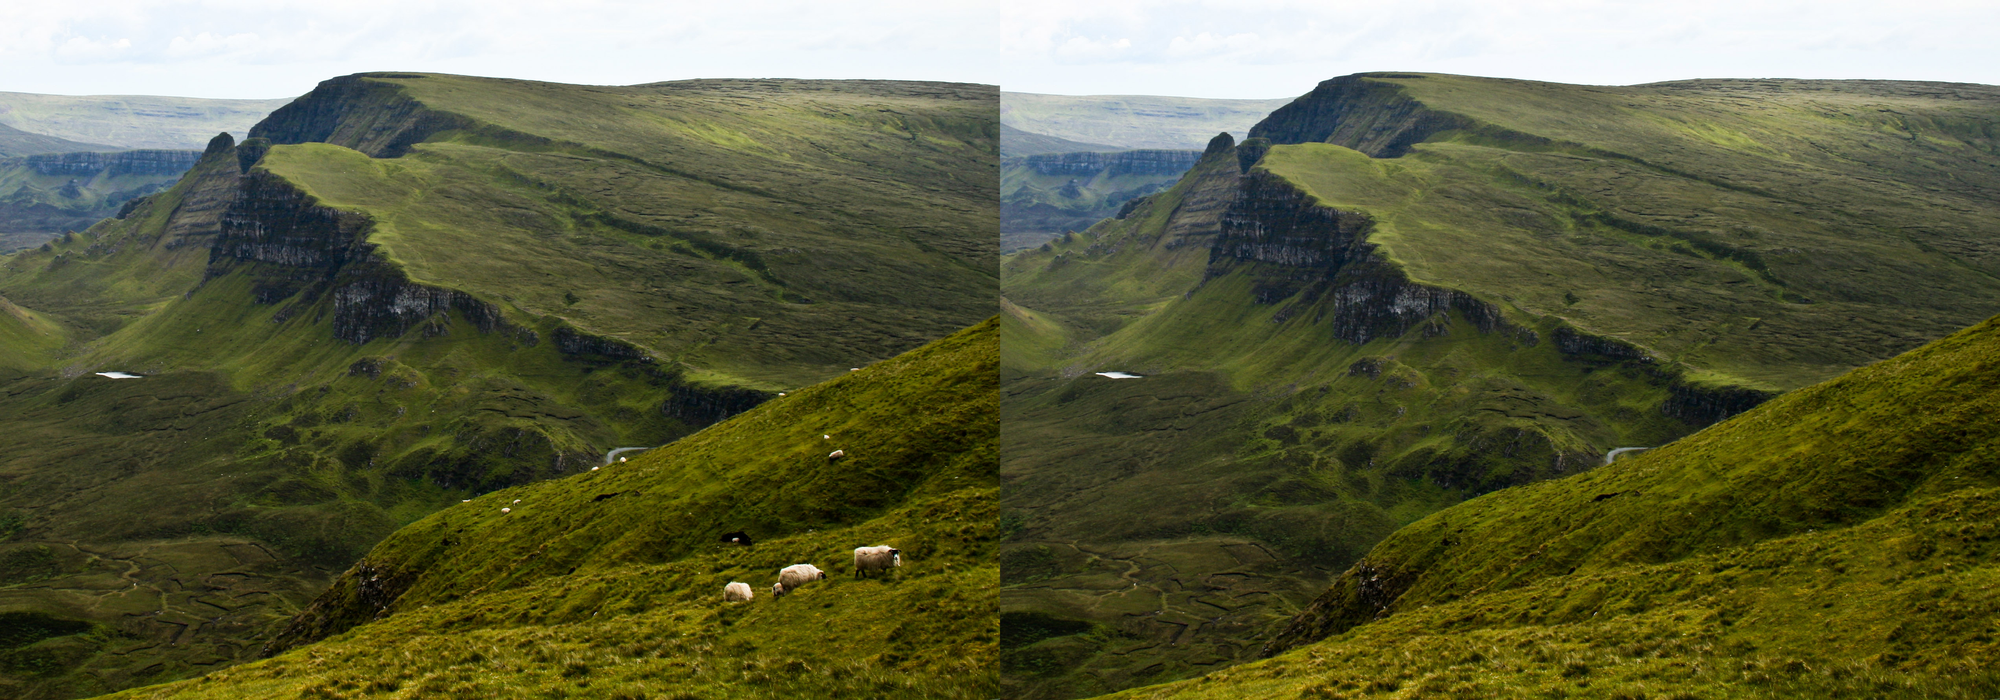 Left: a landscape on the Isle of Skye, with sheep grazing in the foreground and midground. Right: the same landscape, but without sheep.